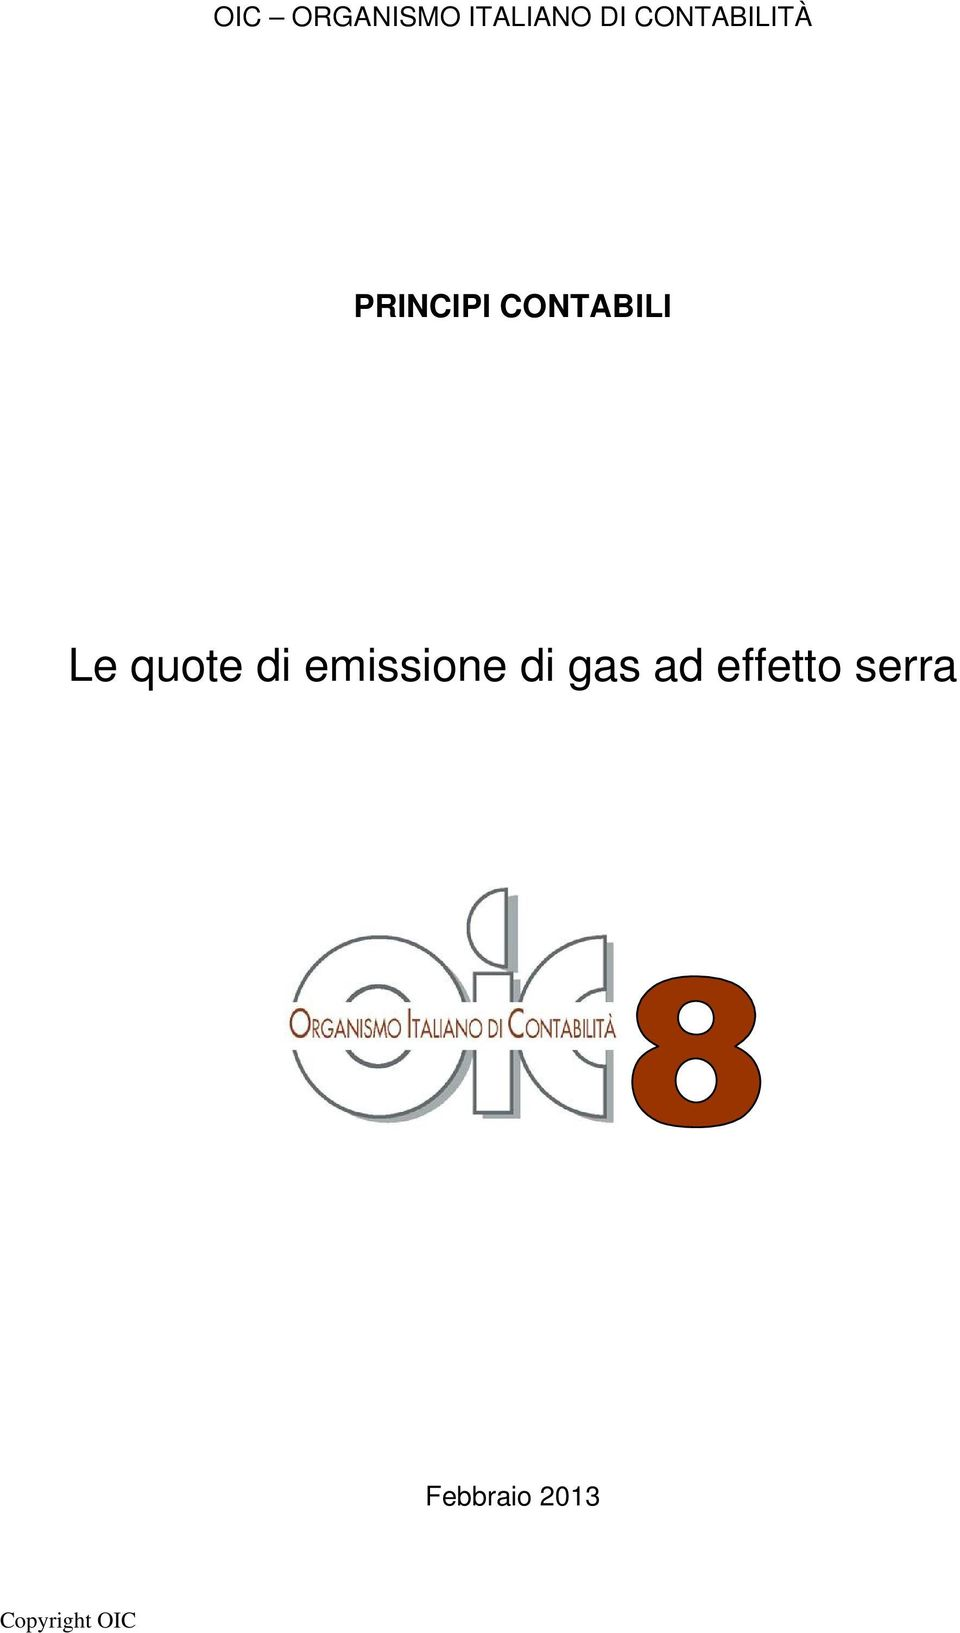 Le quote di emissione di gas ad